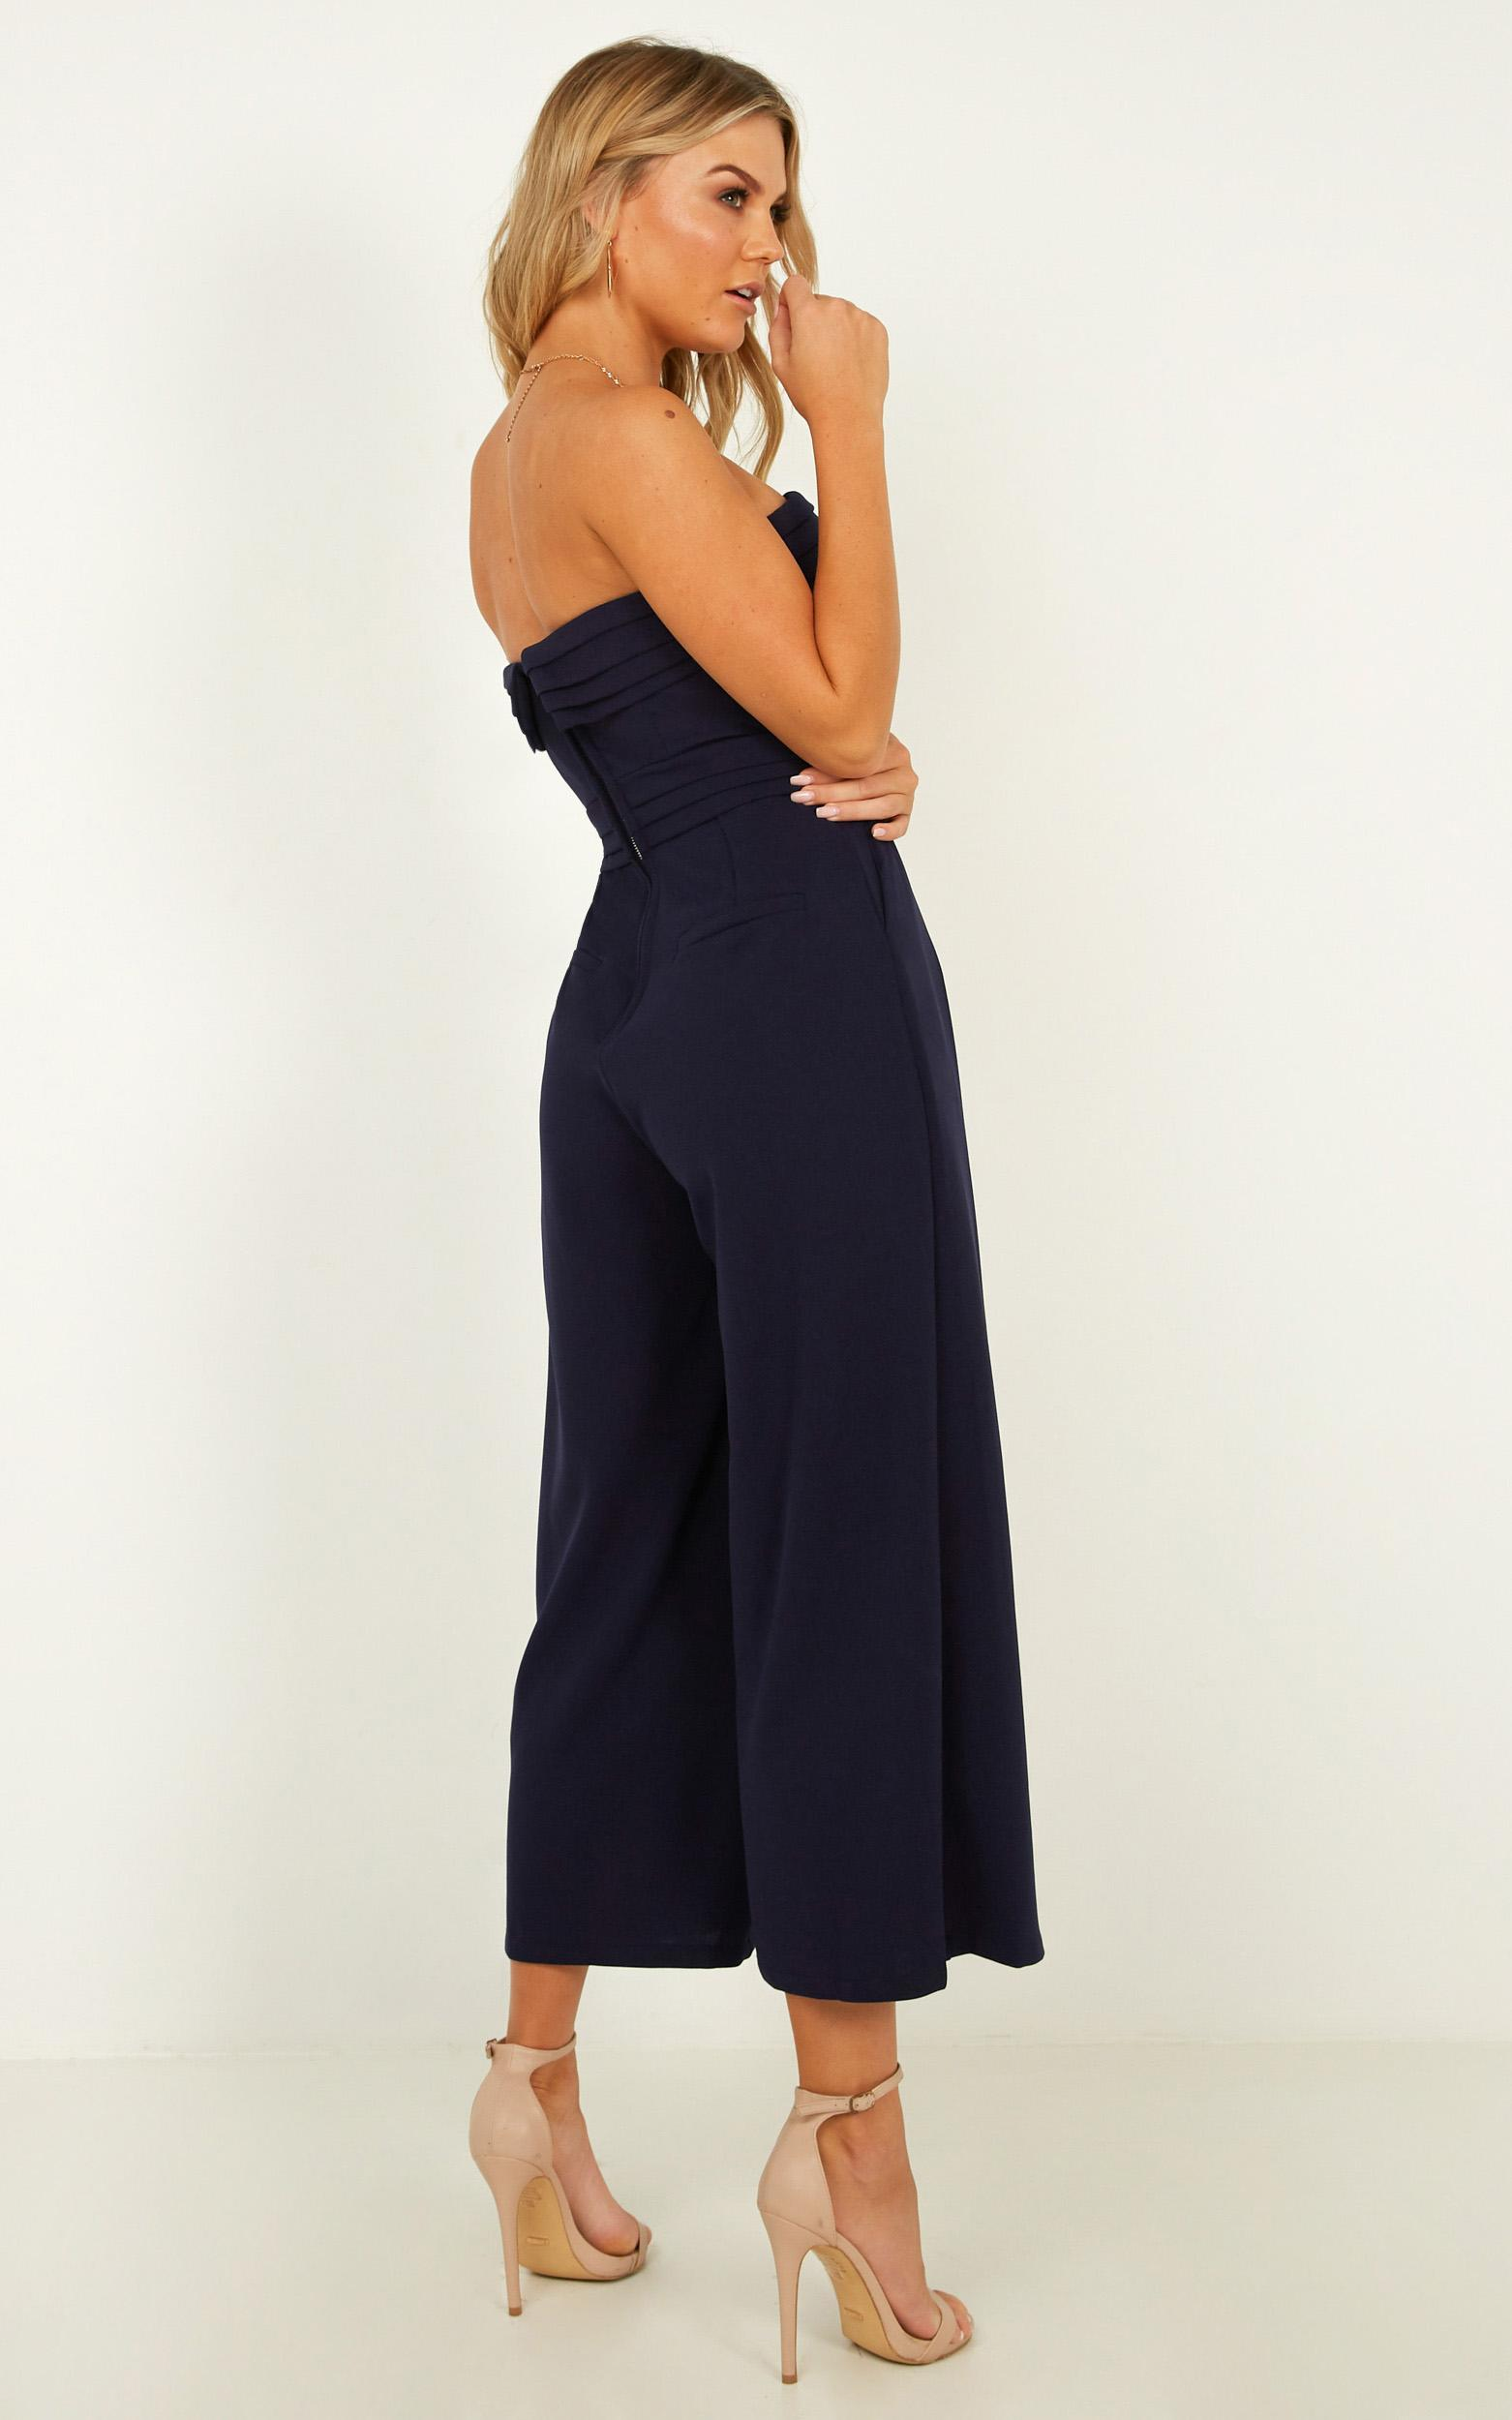 Up Ahead jumpsuit in navy - 14 (XL), Navy, hi-res image number null